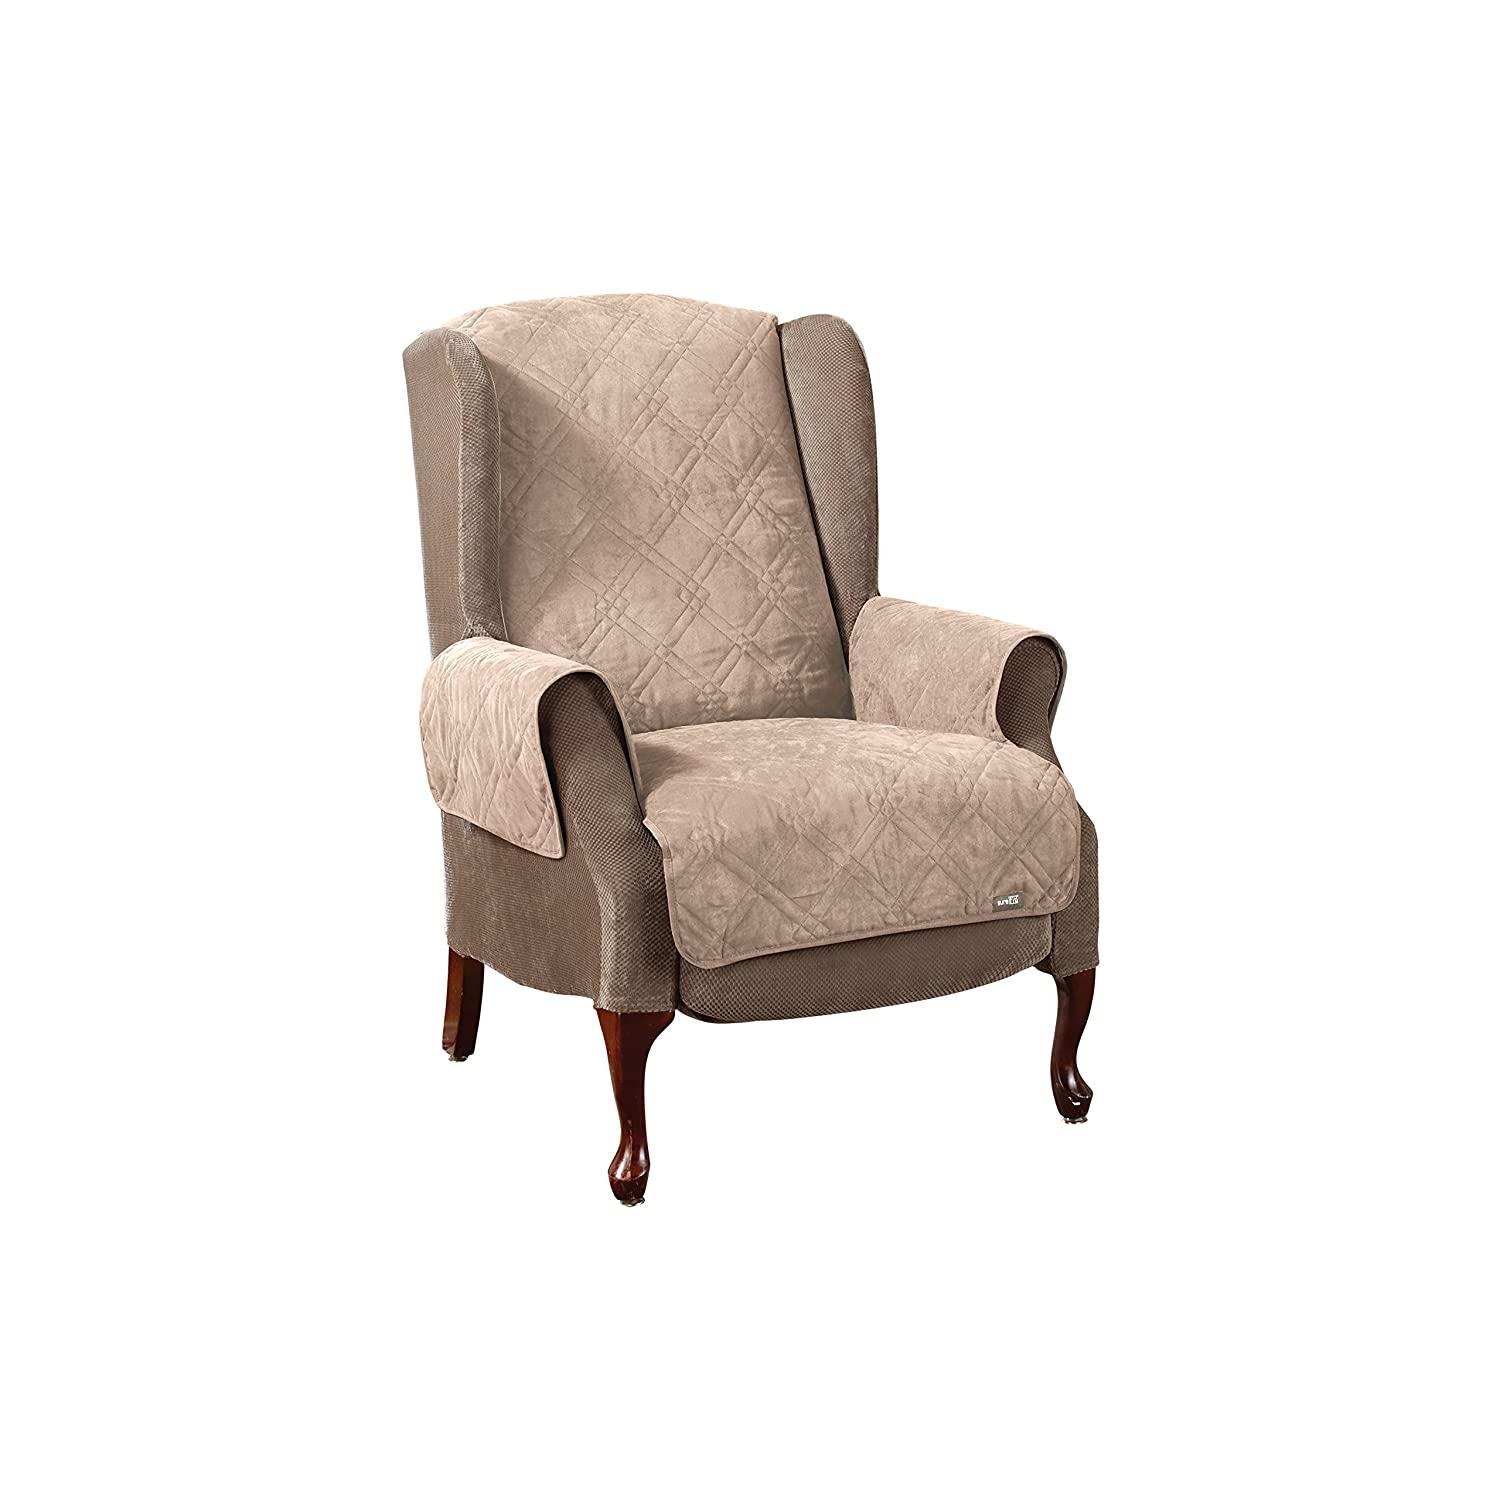 recliner slipcover armless large and furniture slipcovers a extra chair ikea alluring half